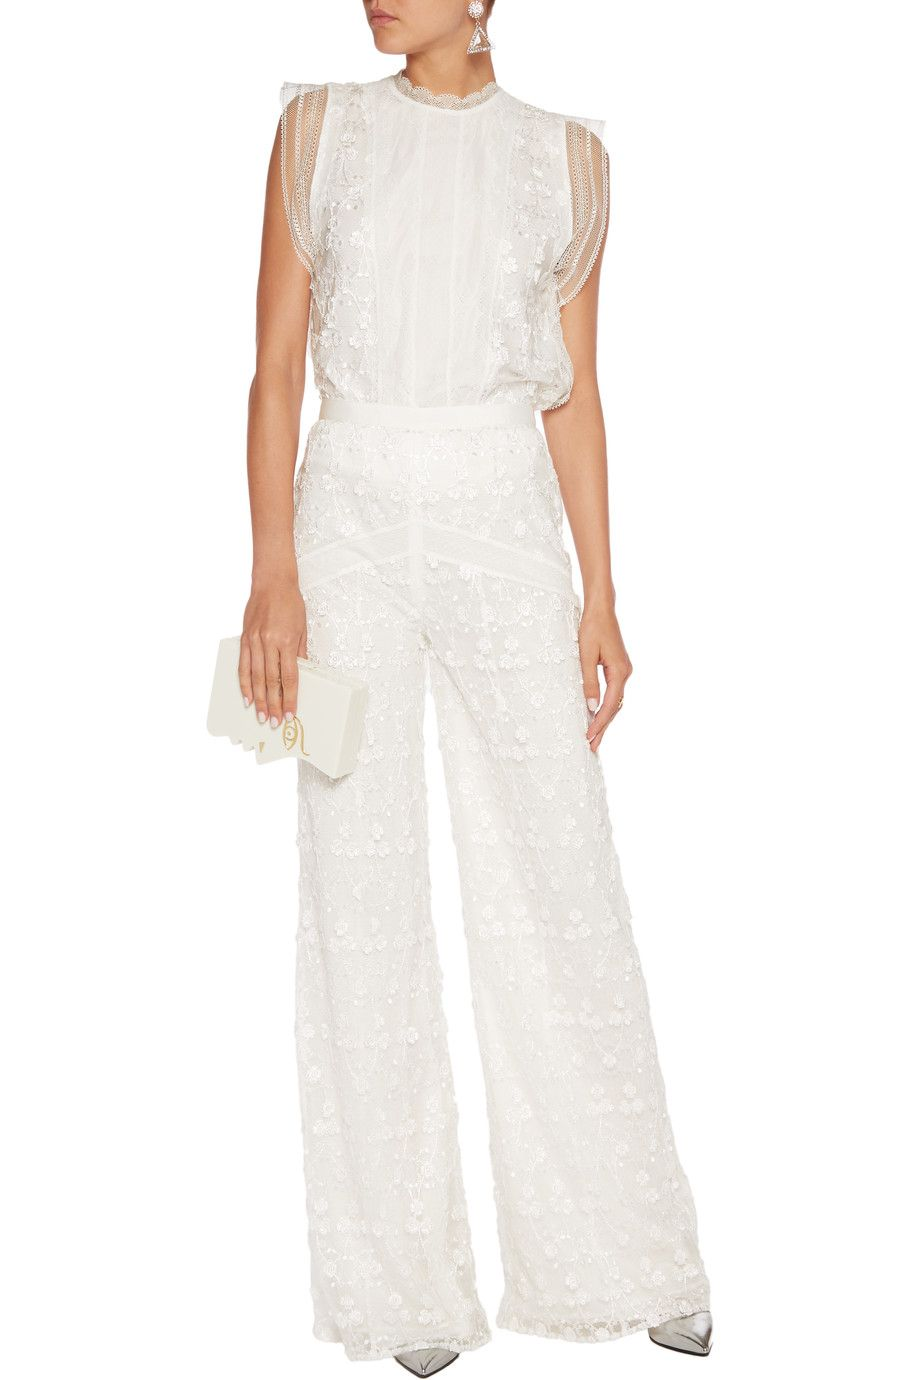 Shop on-sale Alexis Hari embroidered tulle wide-leg pants. Browse other discount designer Pants & more on The Most Fashionable Fashion Outlet, THE OUTNET.COM